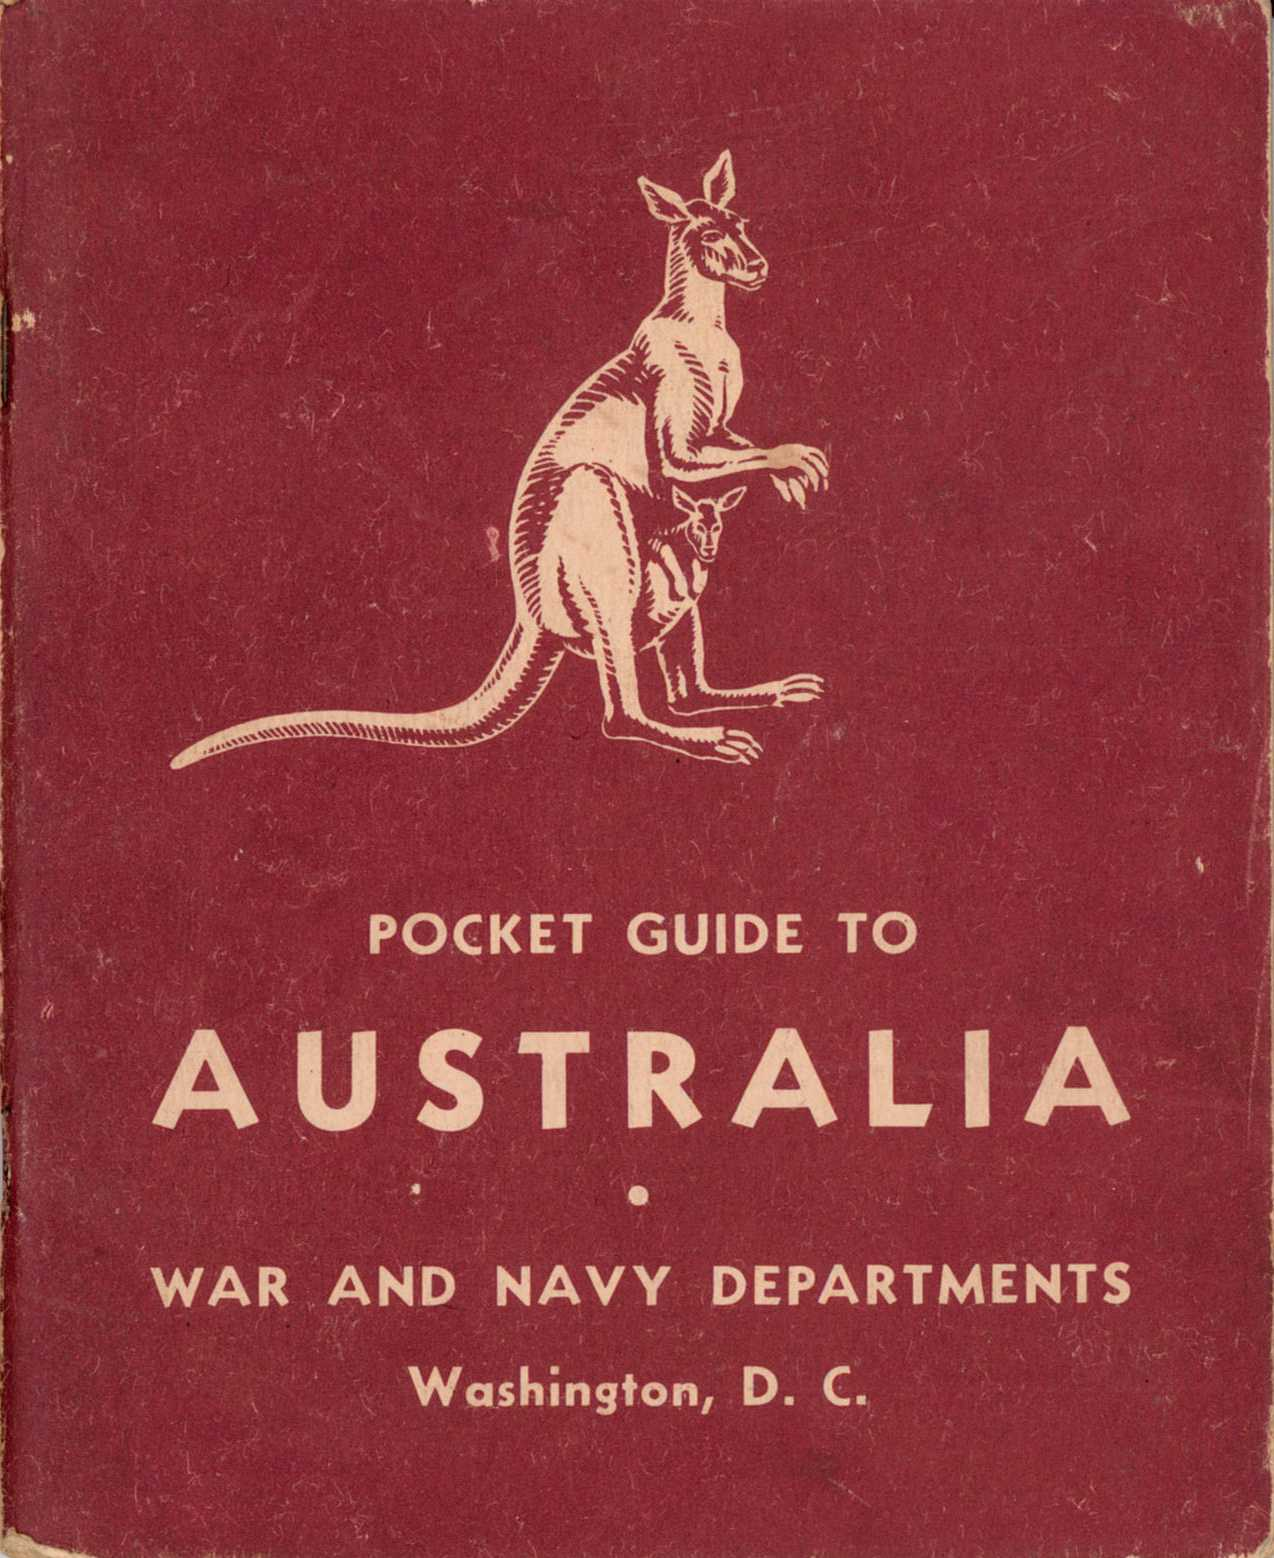 Pocket Guide to Australia cover